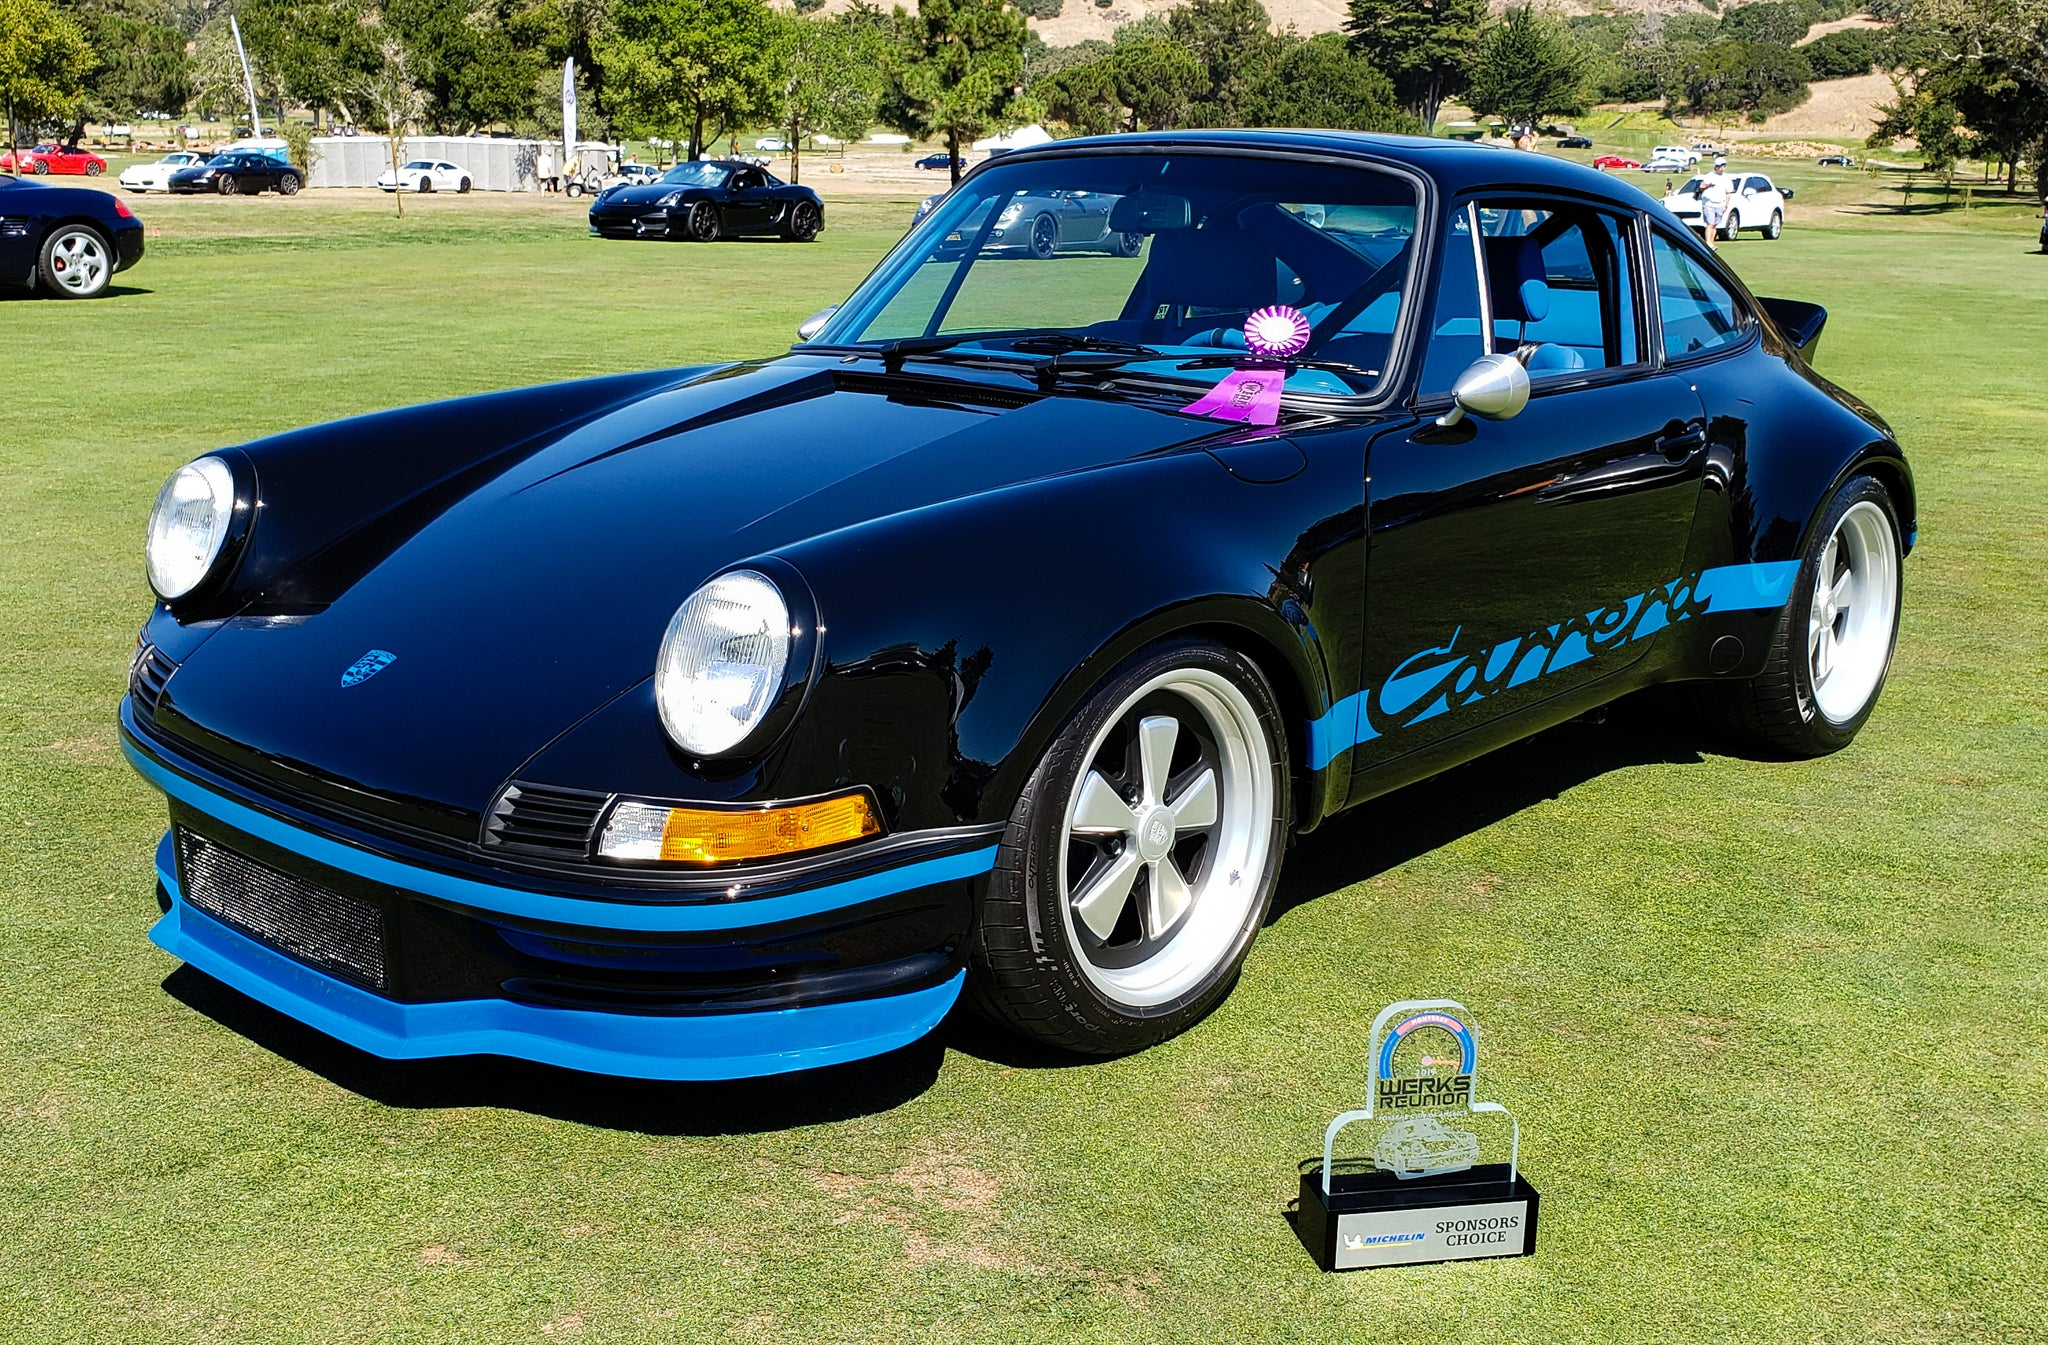 2019 werks reunion winner rsr turbo